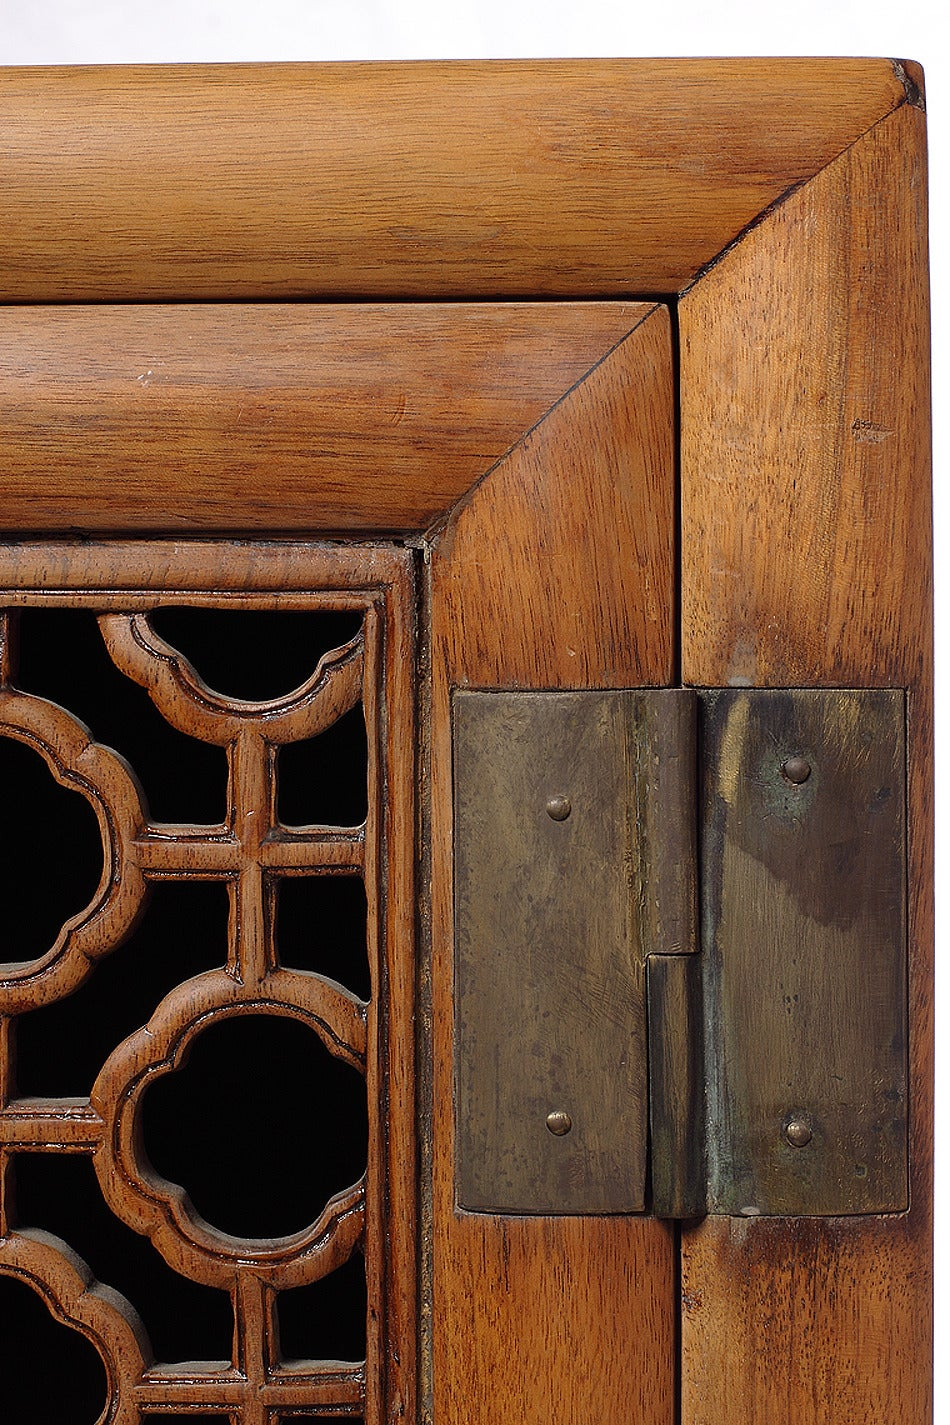 Antique Large Kitchen Cabinet Armoire with Fretwork Top from 19th Century, China 5